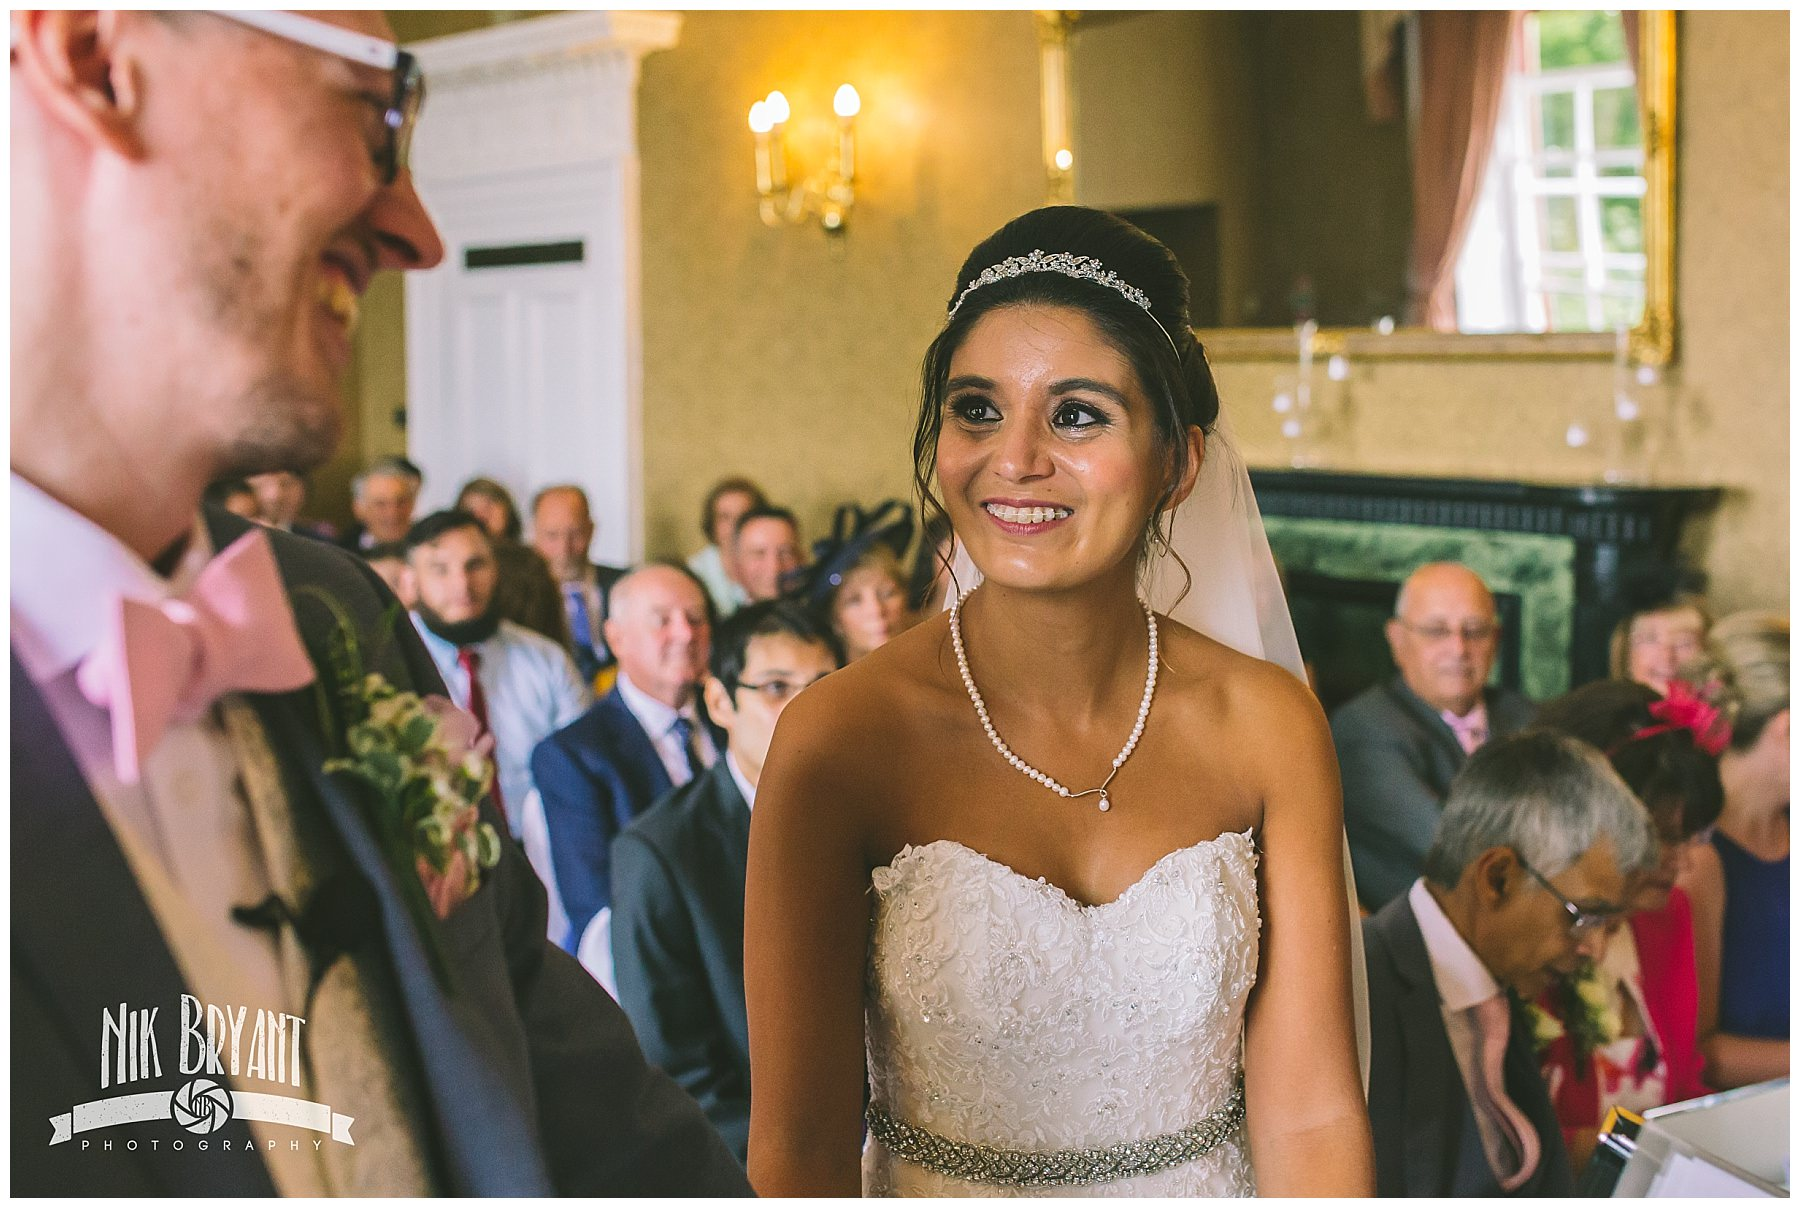 Bride smiles as she sees her groom for the first time